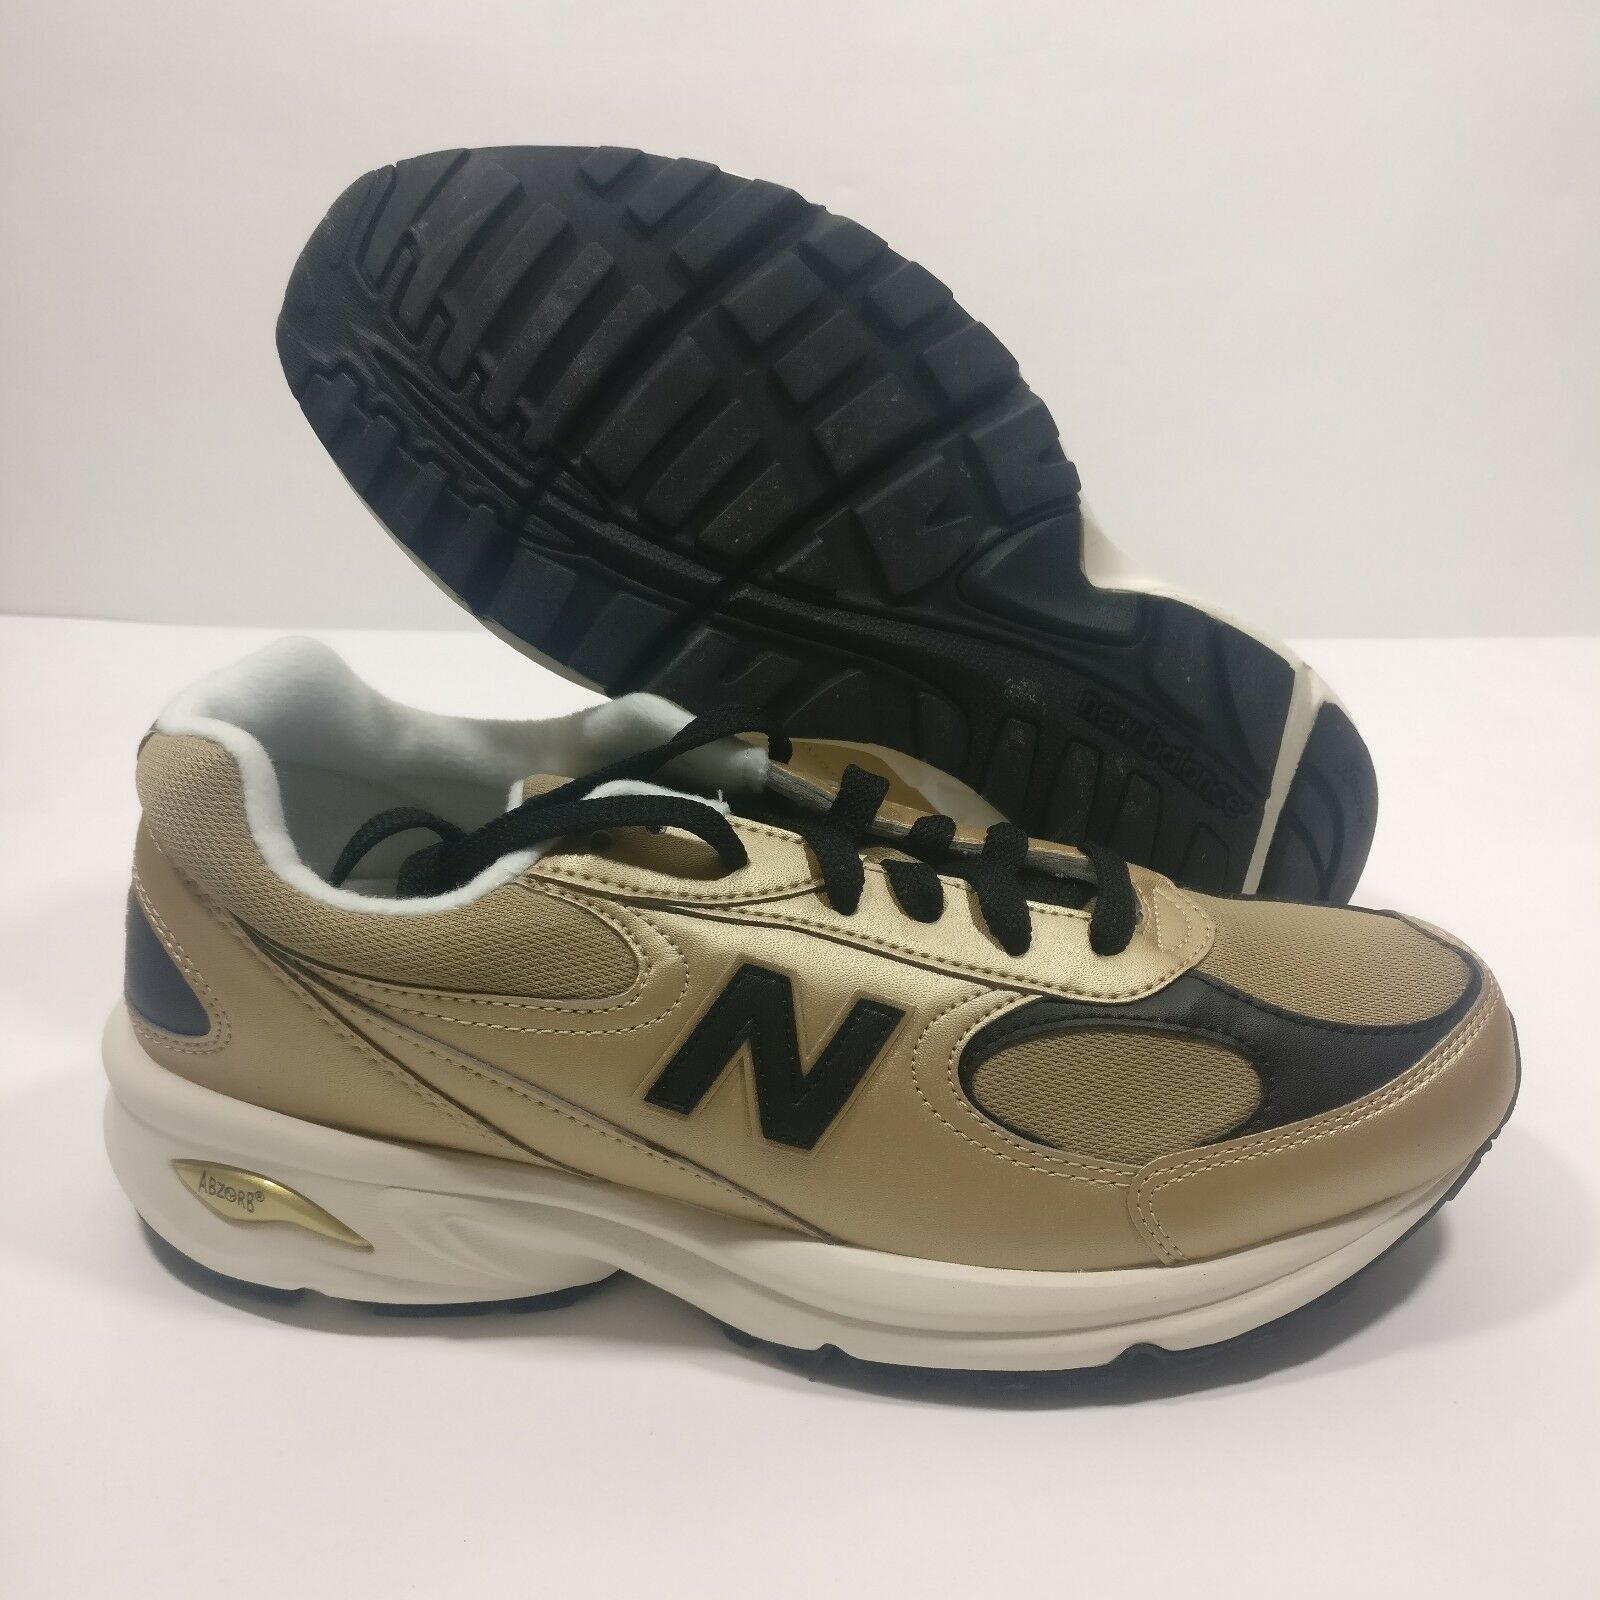 Mens New Balance ML498 GB Gold Leather Running Athletic Shoe Size 8.5 & 9.5